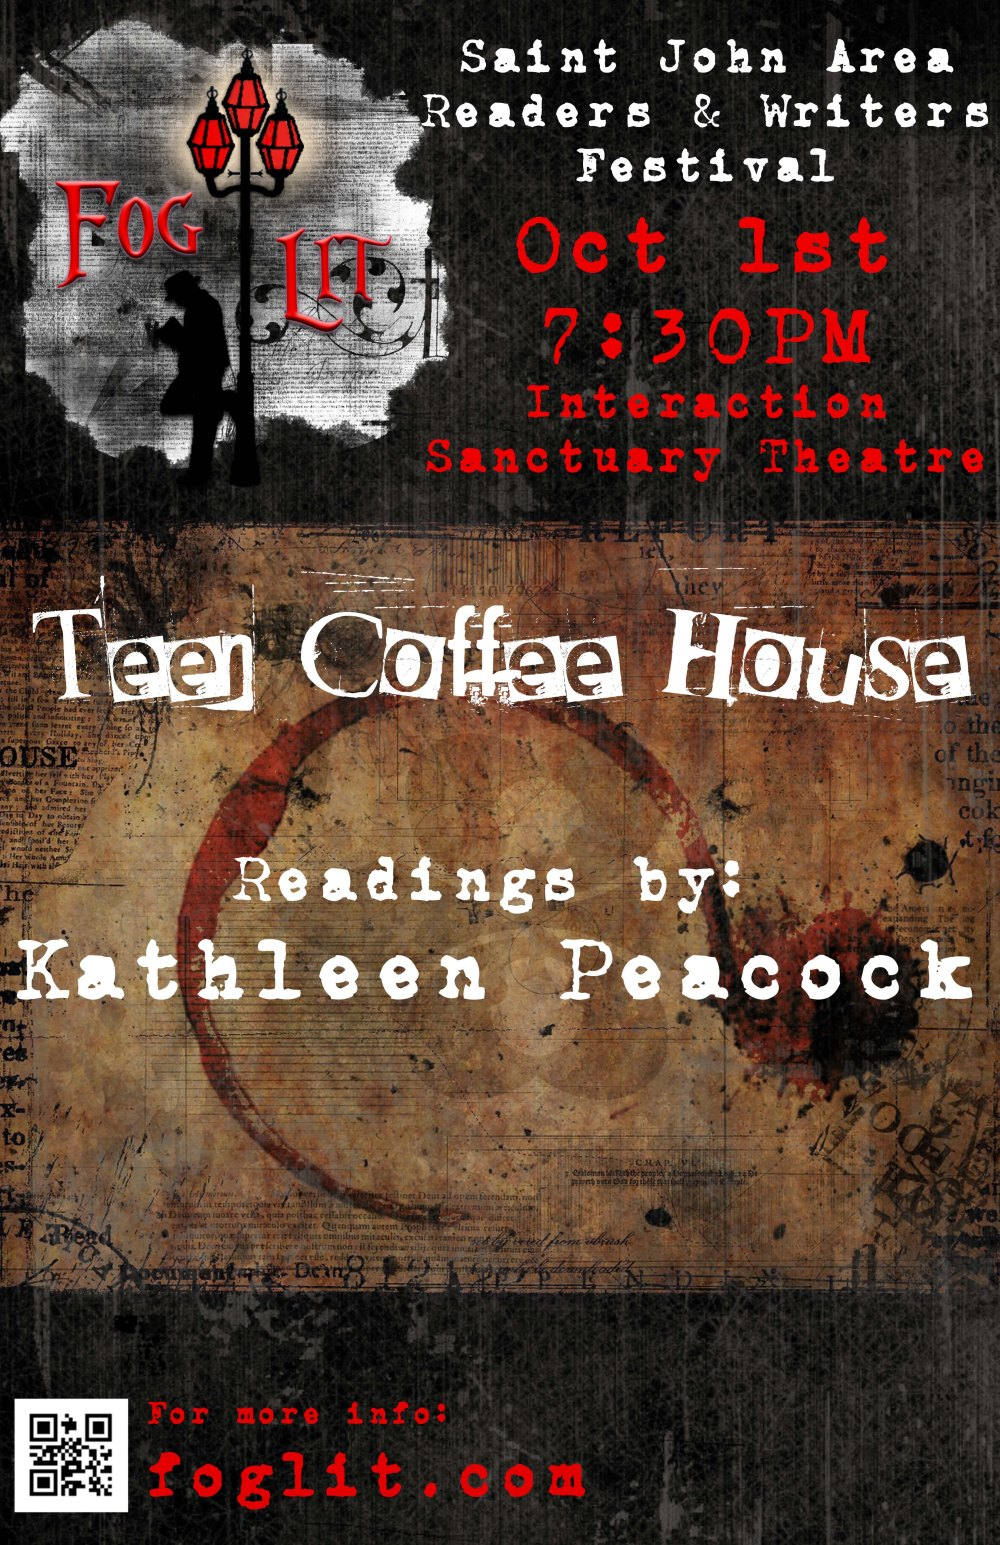 2015_Poster_TeenCoffeeHouse_QA